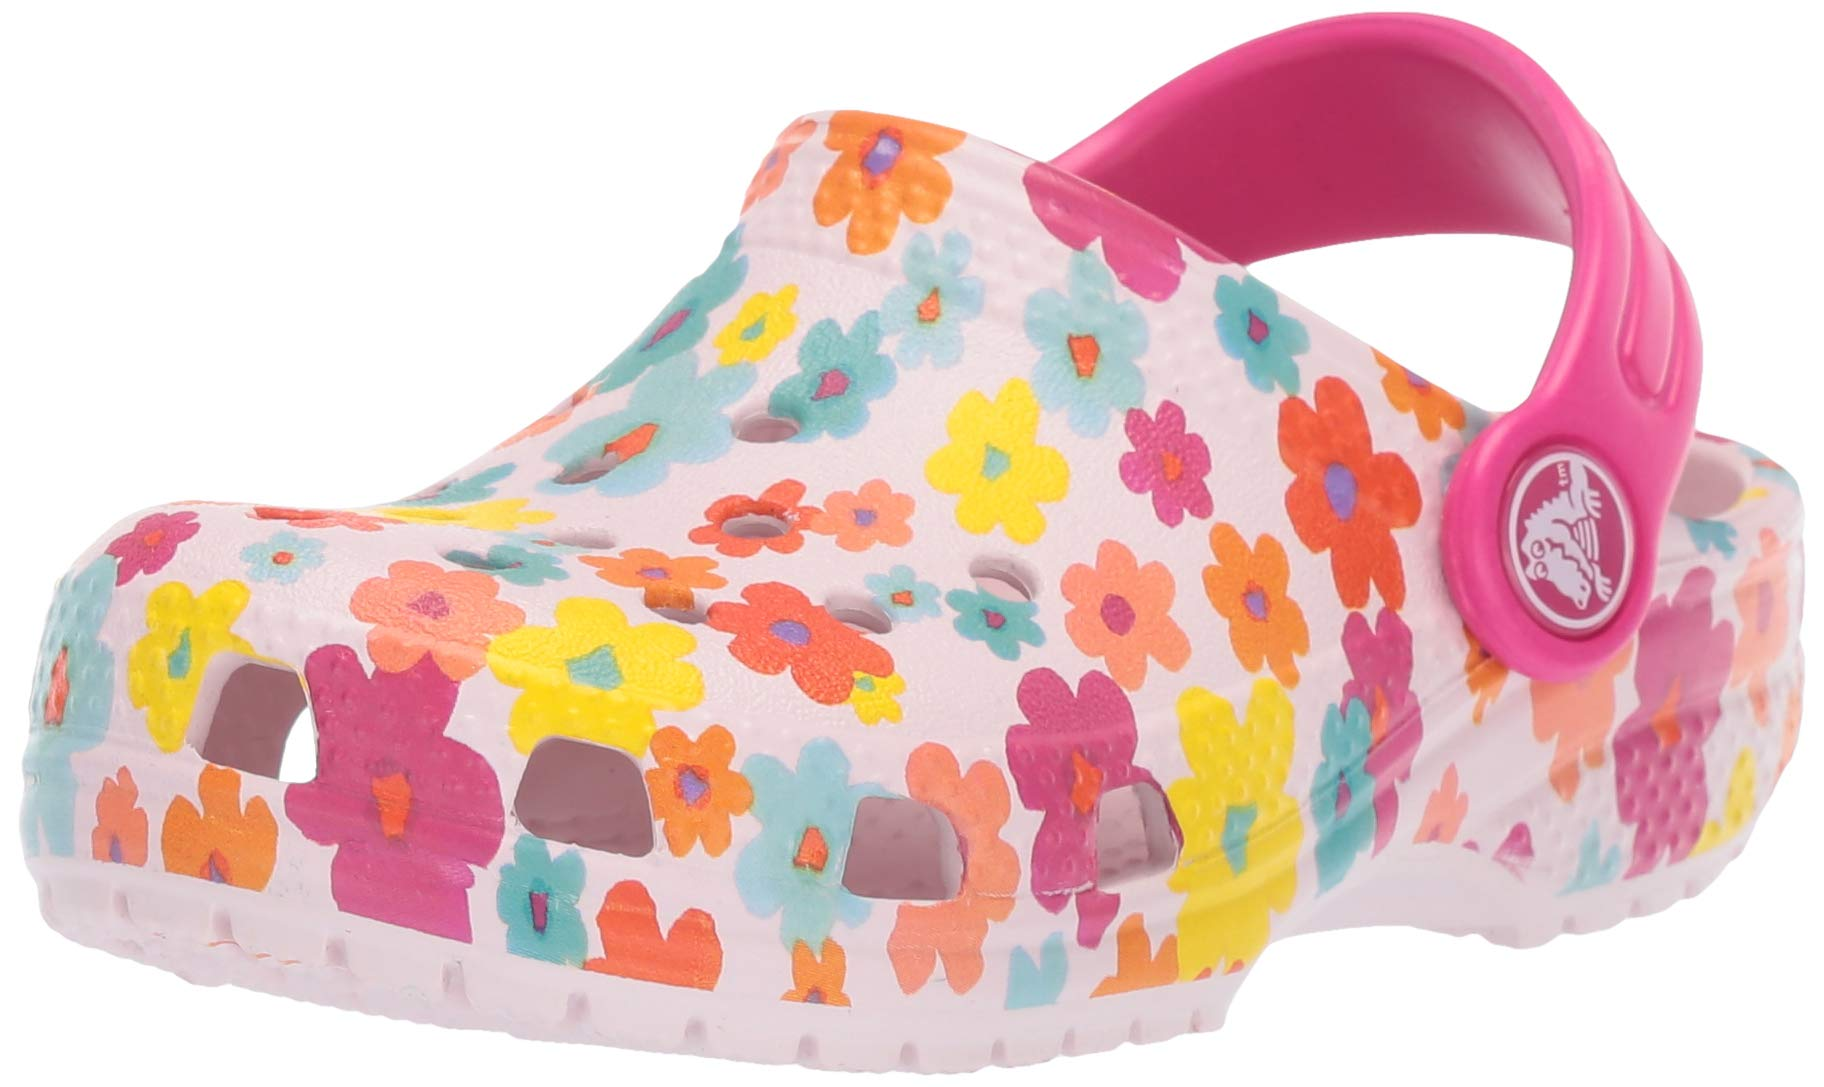 Crocs Kids' Classic Seasonal Graphic Floral Clog, Barely Pink, 4 M US Toddler